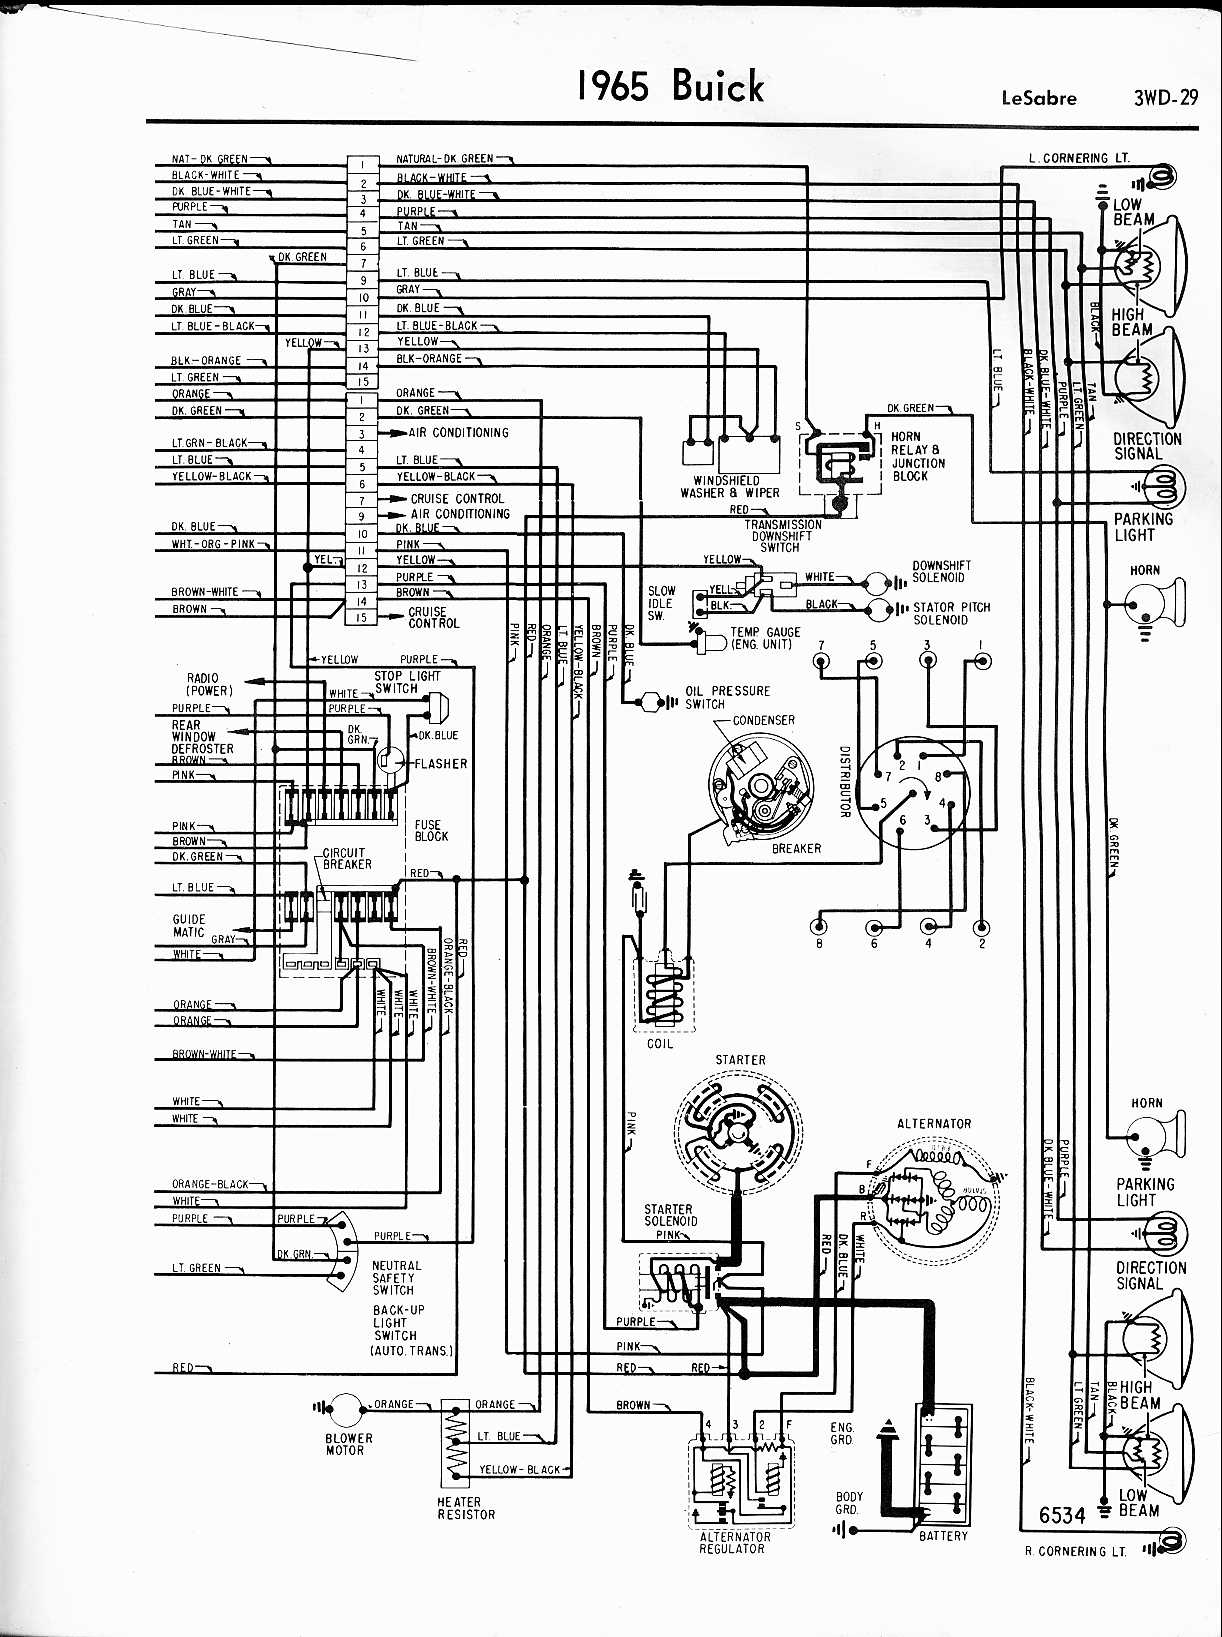 buick riviera wiring diagram all wiring diagram 1989 buick riviera fuse box wiring diagrams studebaker wiring diagrams buick riviera wiring diagram